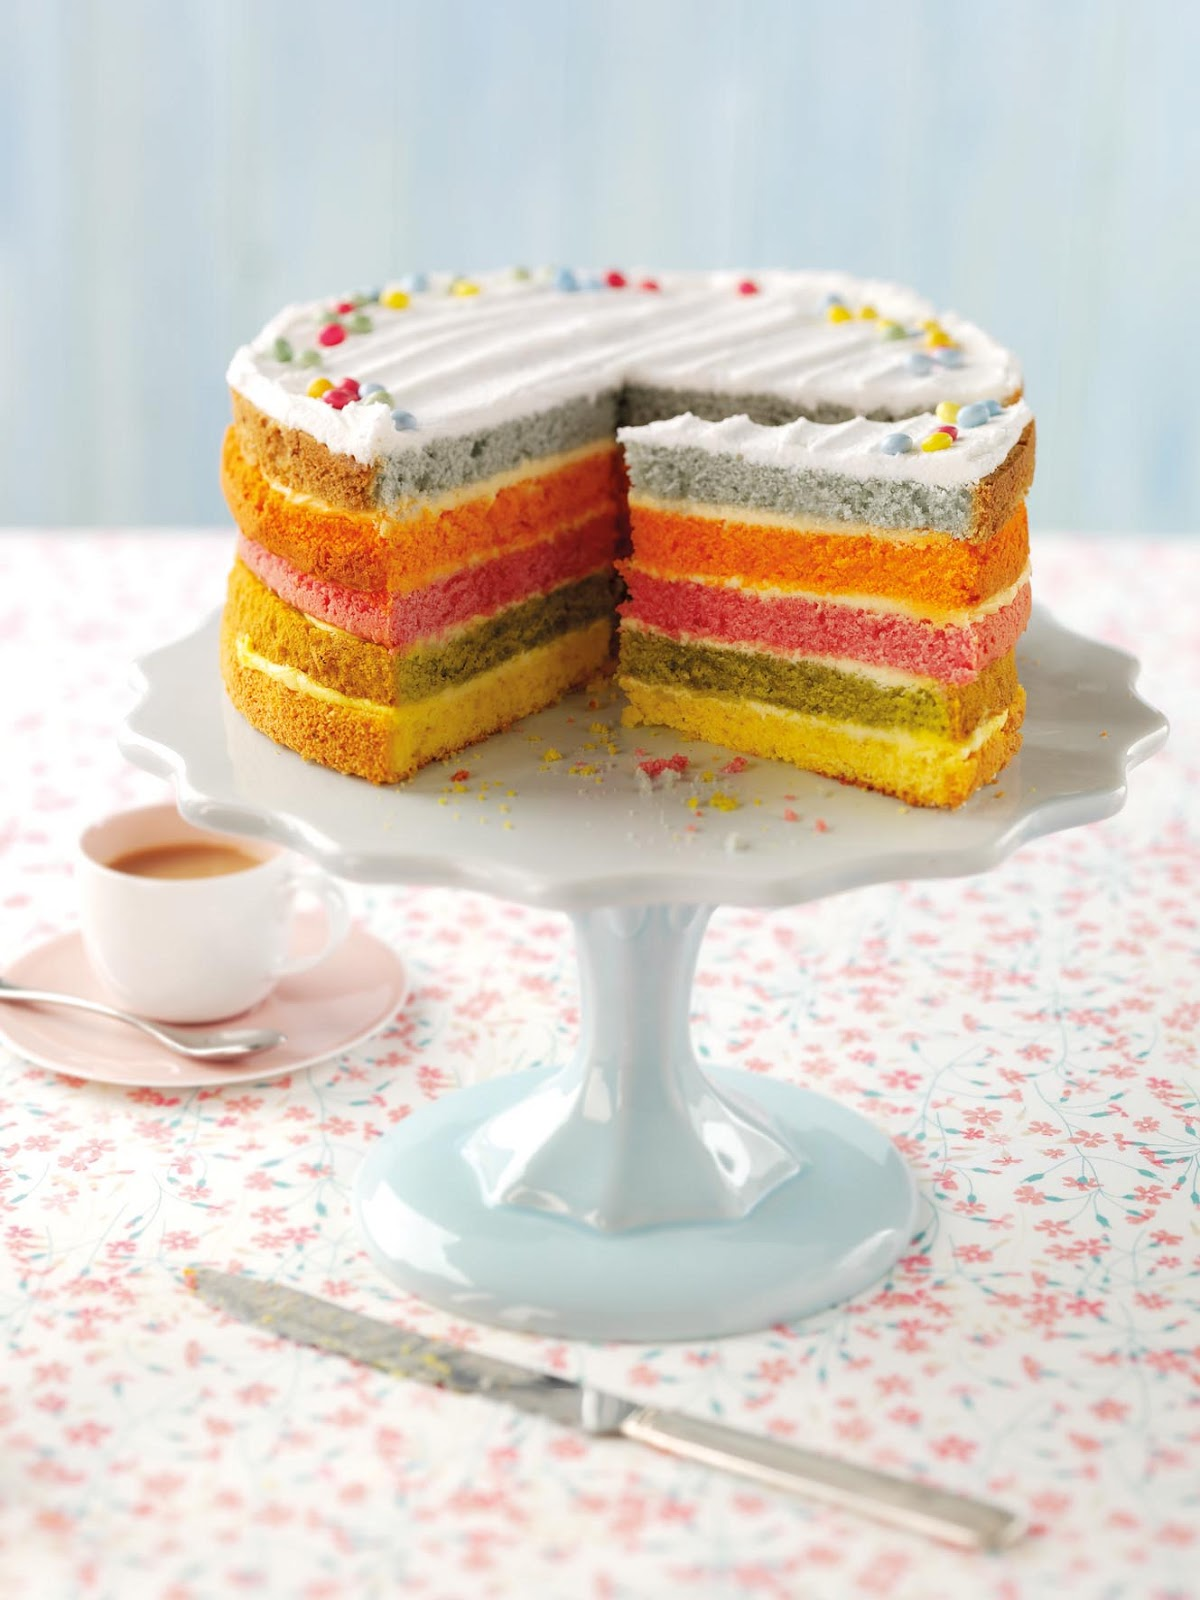 Birthday Cake Photo Asda : New Celebration Cakes at Asda - including a Rainbow Cake ...